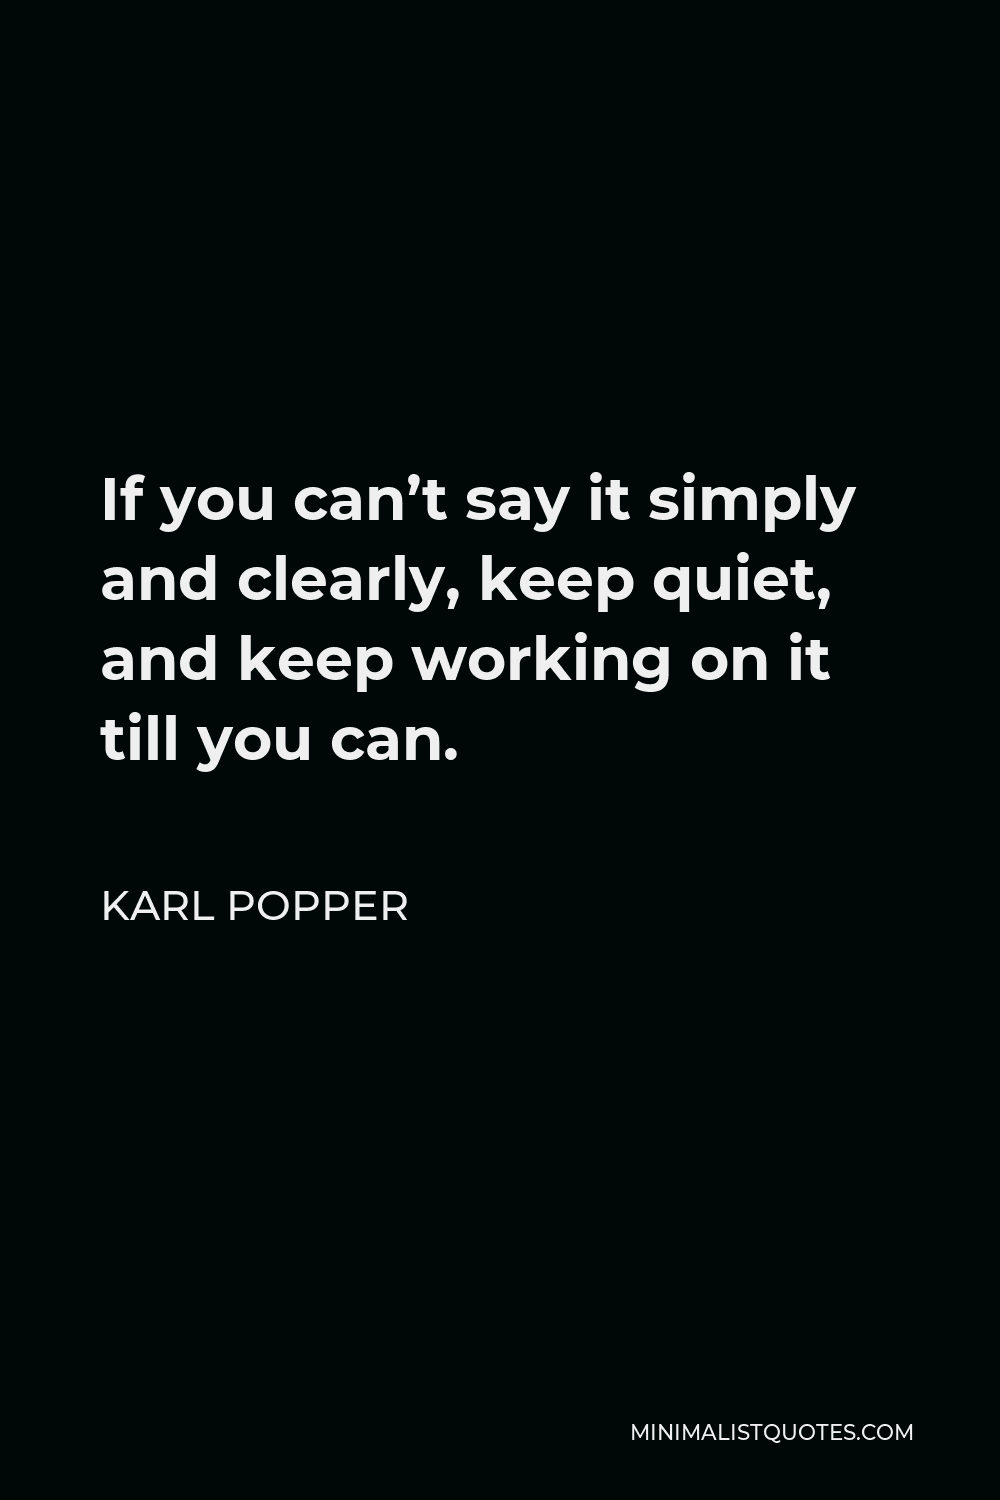 Karl Popper Quote - If you can't say it simply and clearly, keep quiet, and keep working on it till you can.